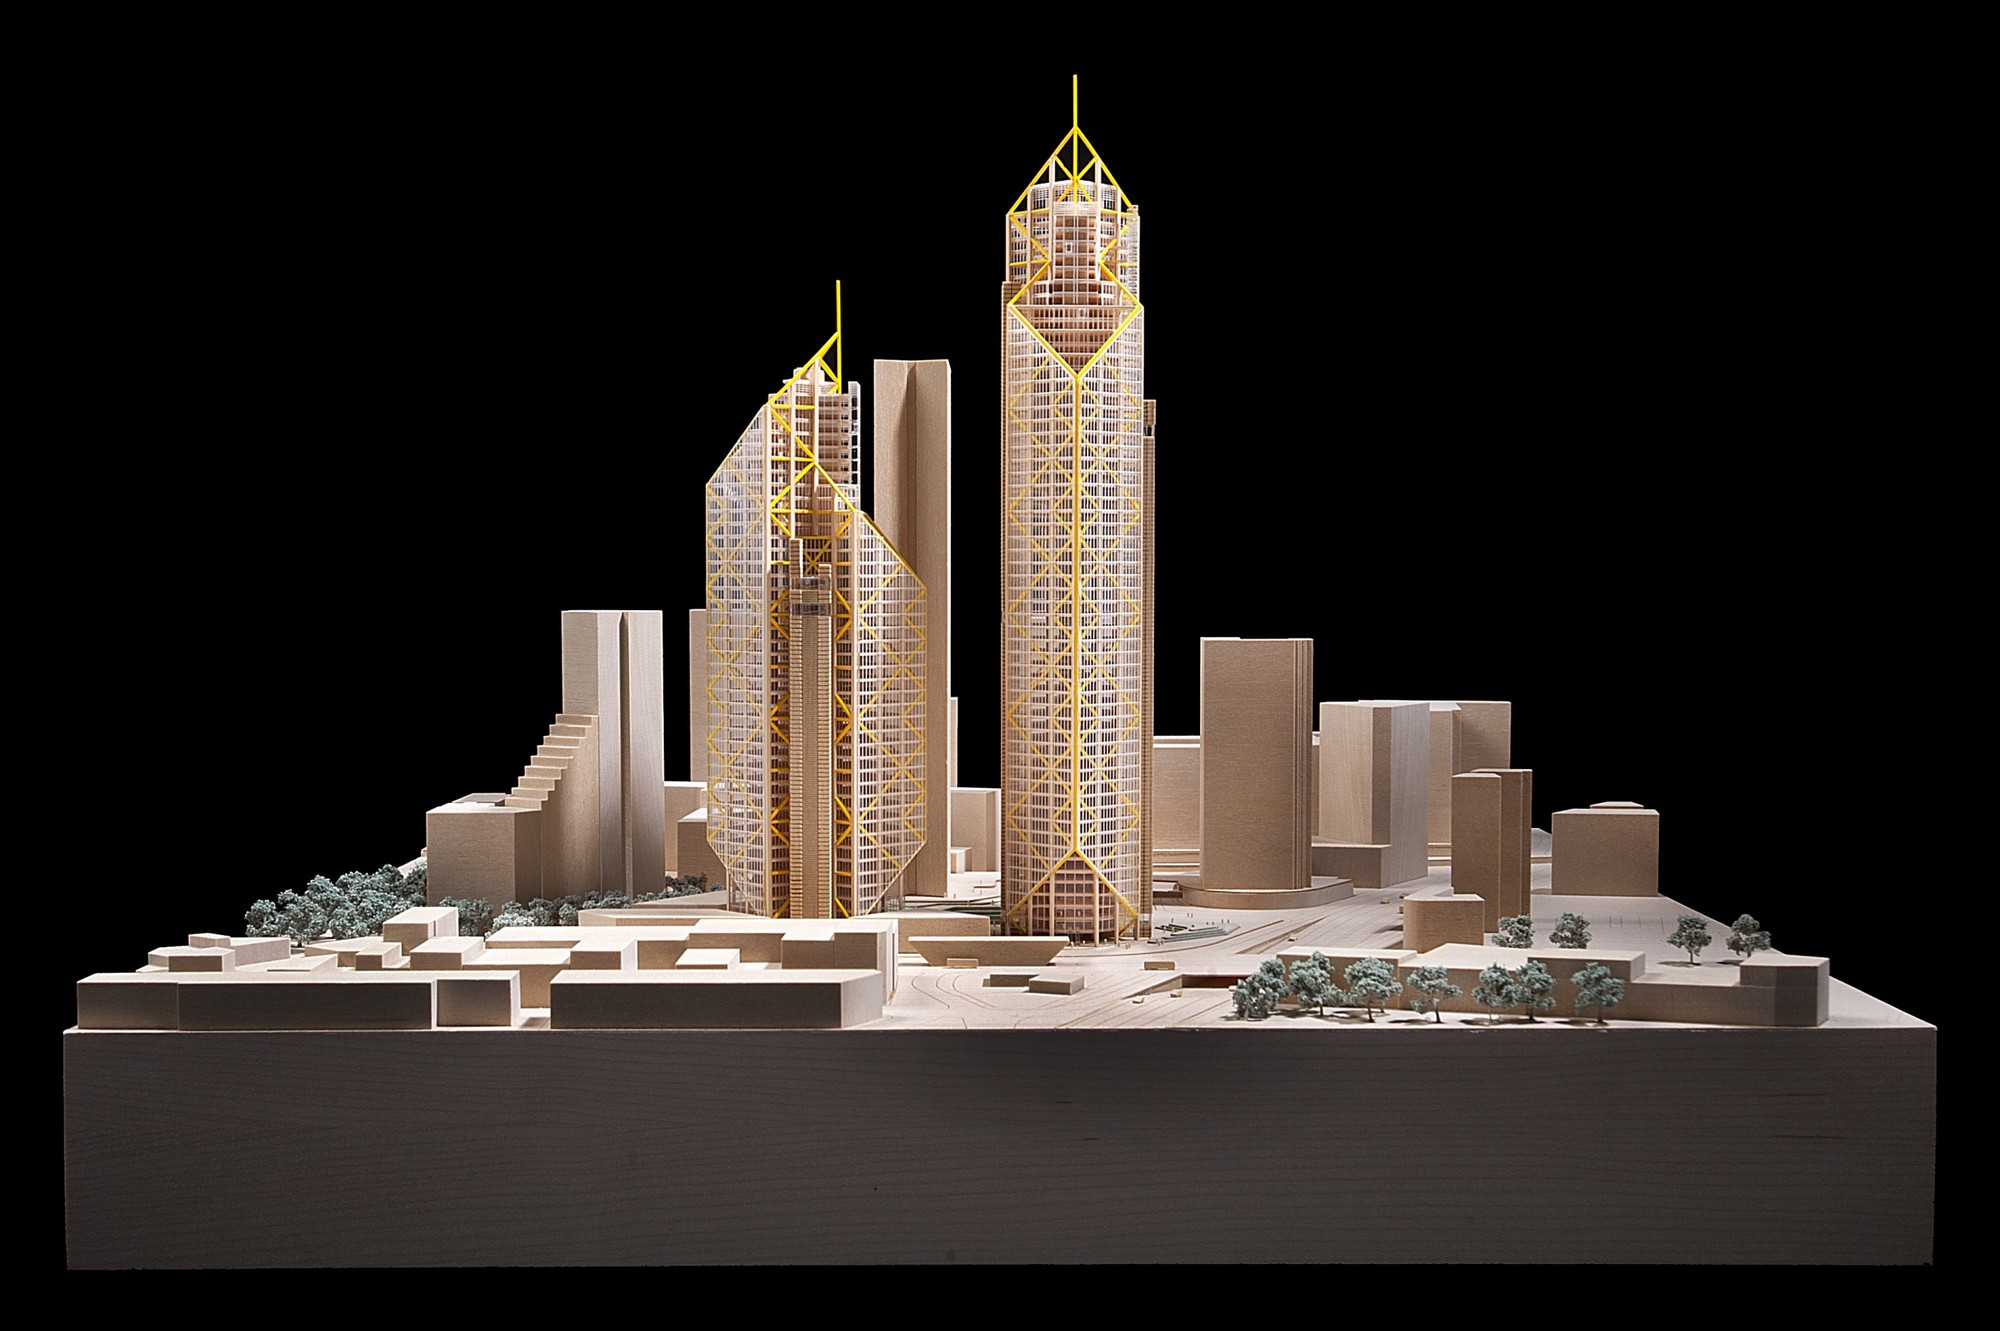 RSHP Unveils Plans for Two Tower Development in Bogotá, © RSHP